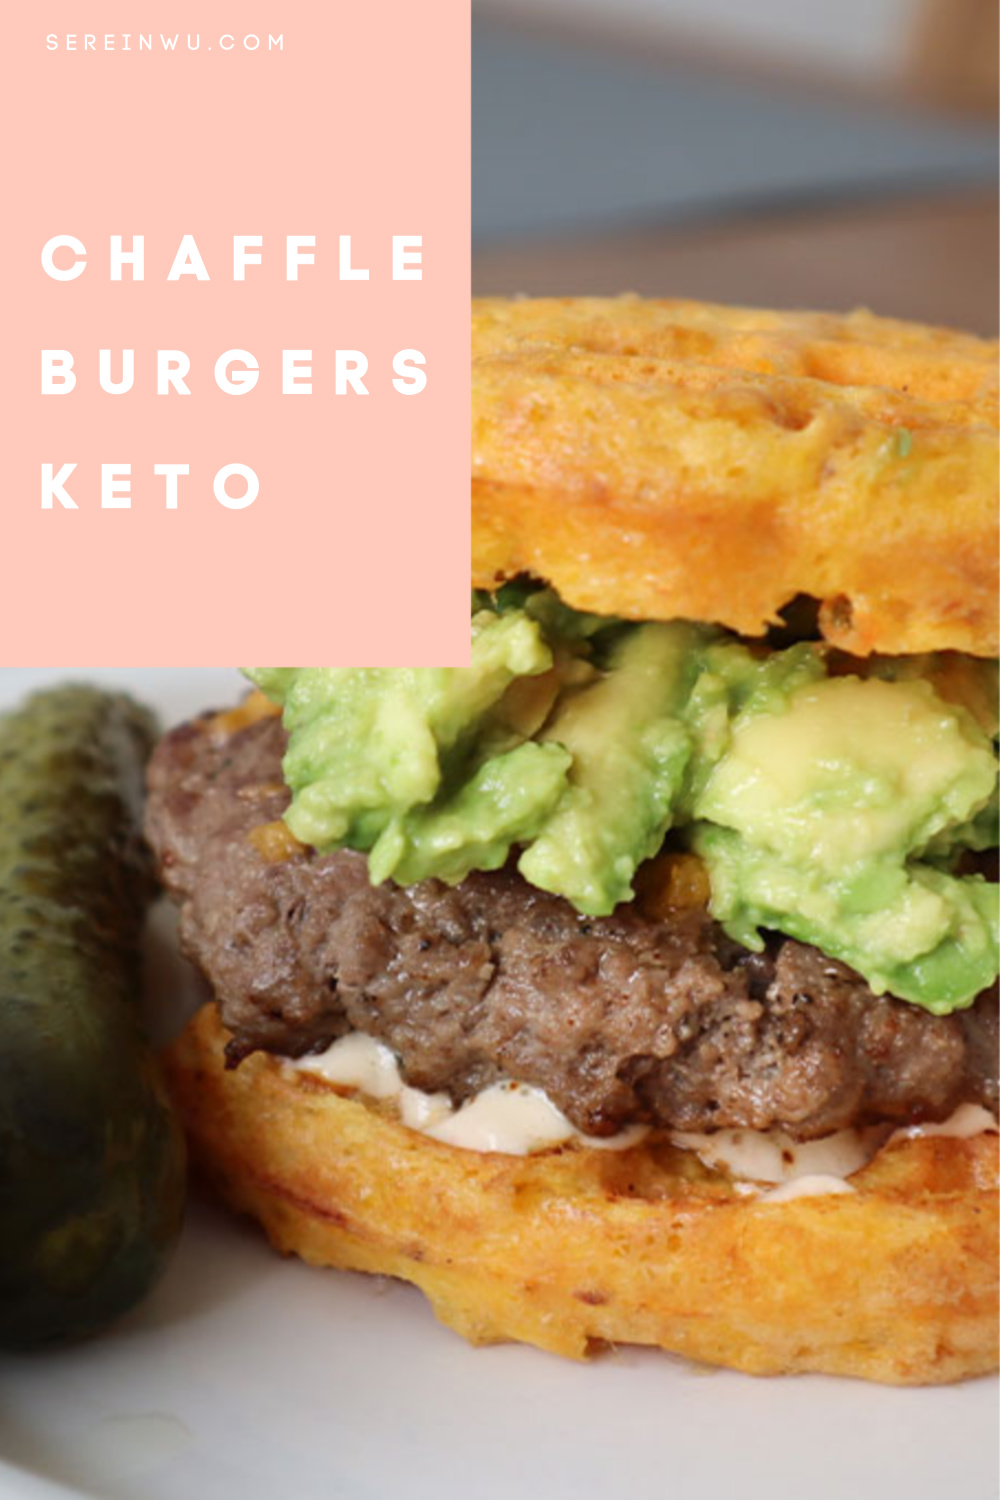 how to make chaffle burgers at home keto friendly